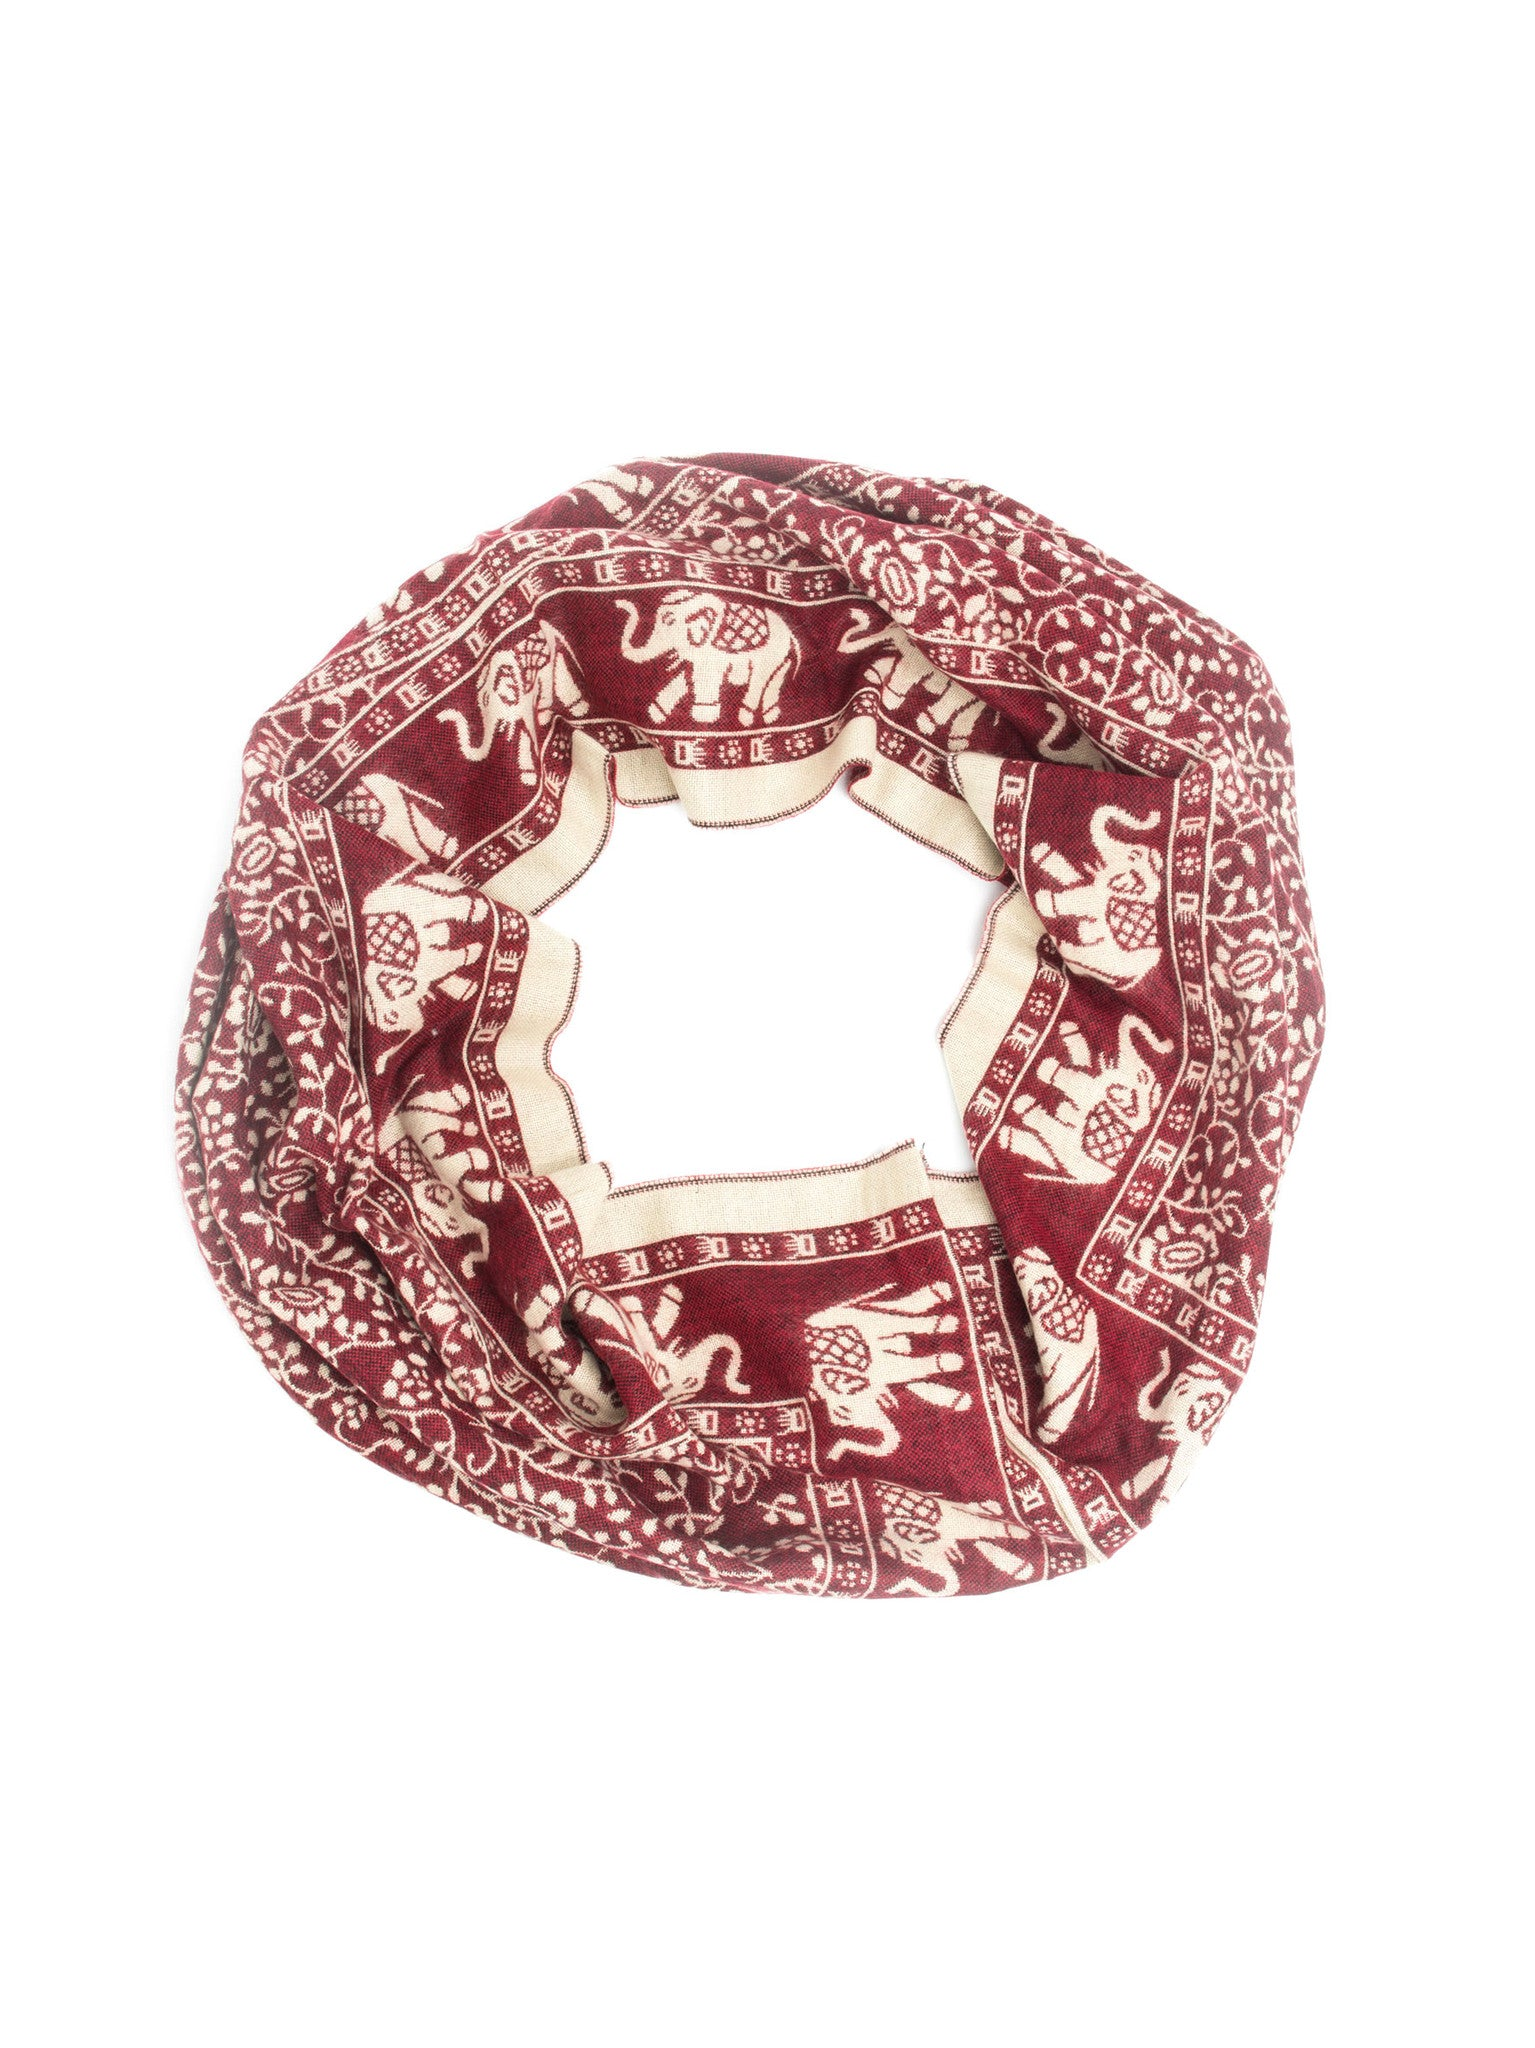 Scarves - Hathi Winter Infinity Scarf, Blanket Scarf, Indian Elephant Design -() Bohomonde  - 11